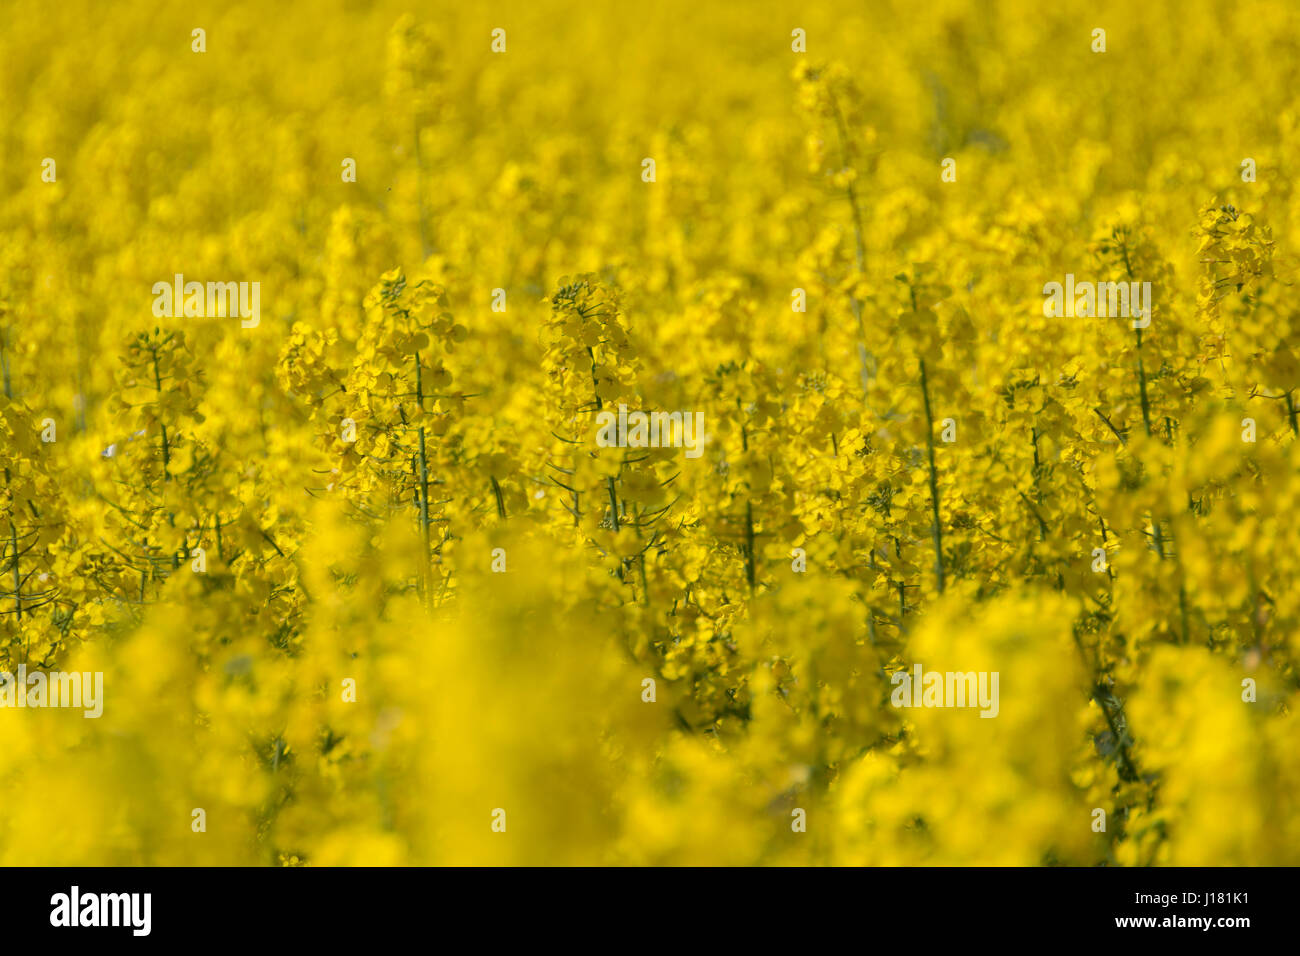 Field yellow flowers grown rapeseed stock photos field yellow fields of yellow rapeseed grown for oil extraction from its seeds stock image mightylinksfo